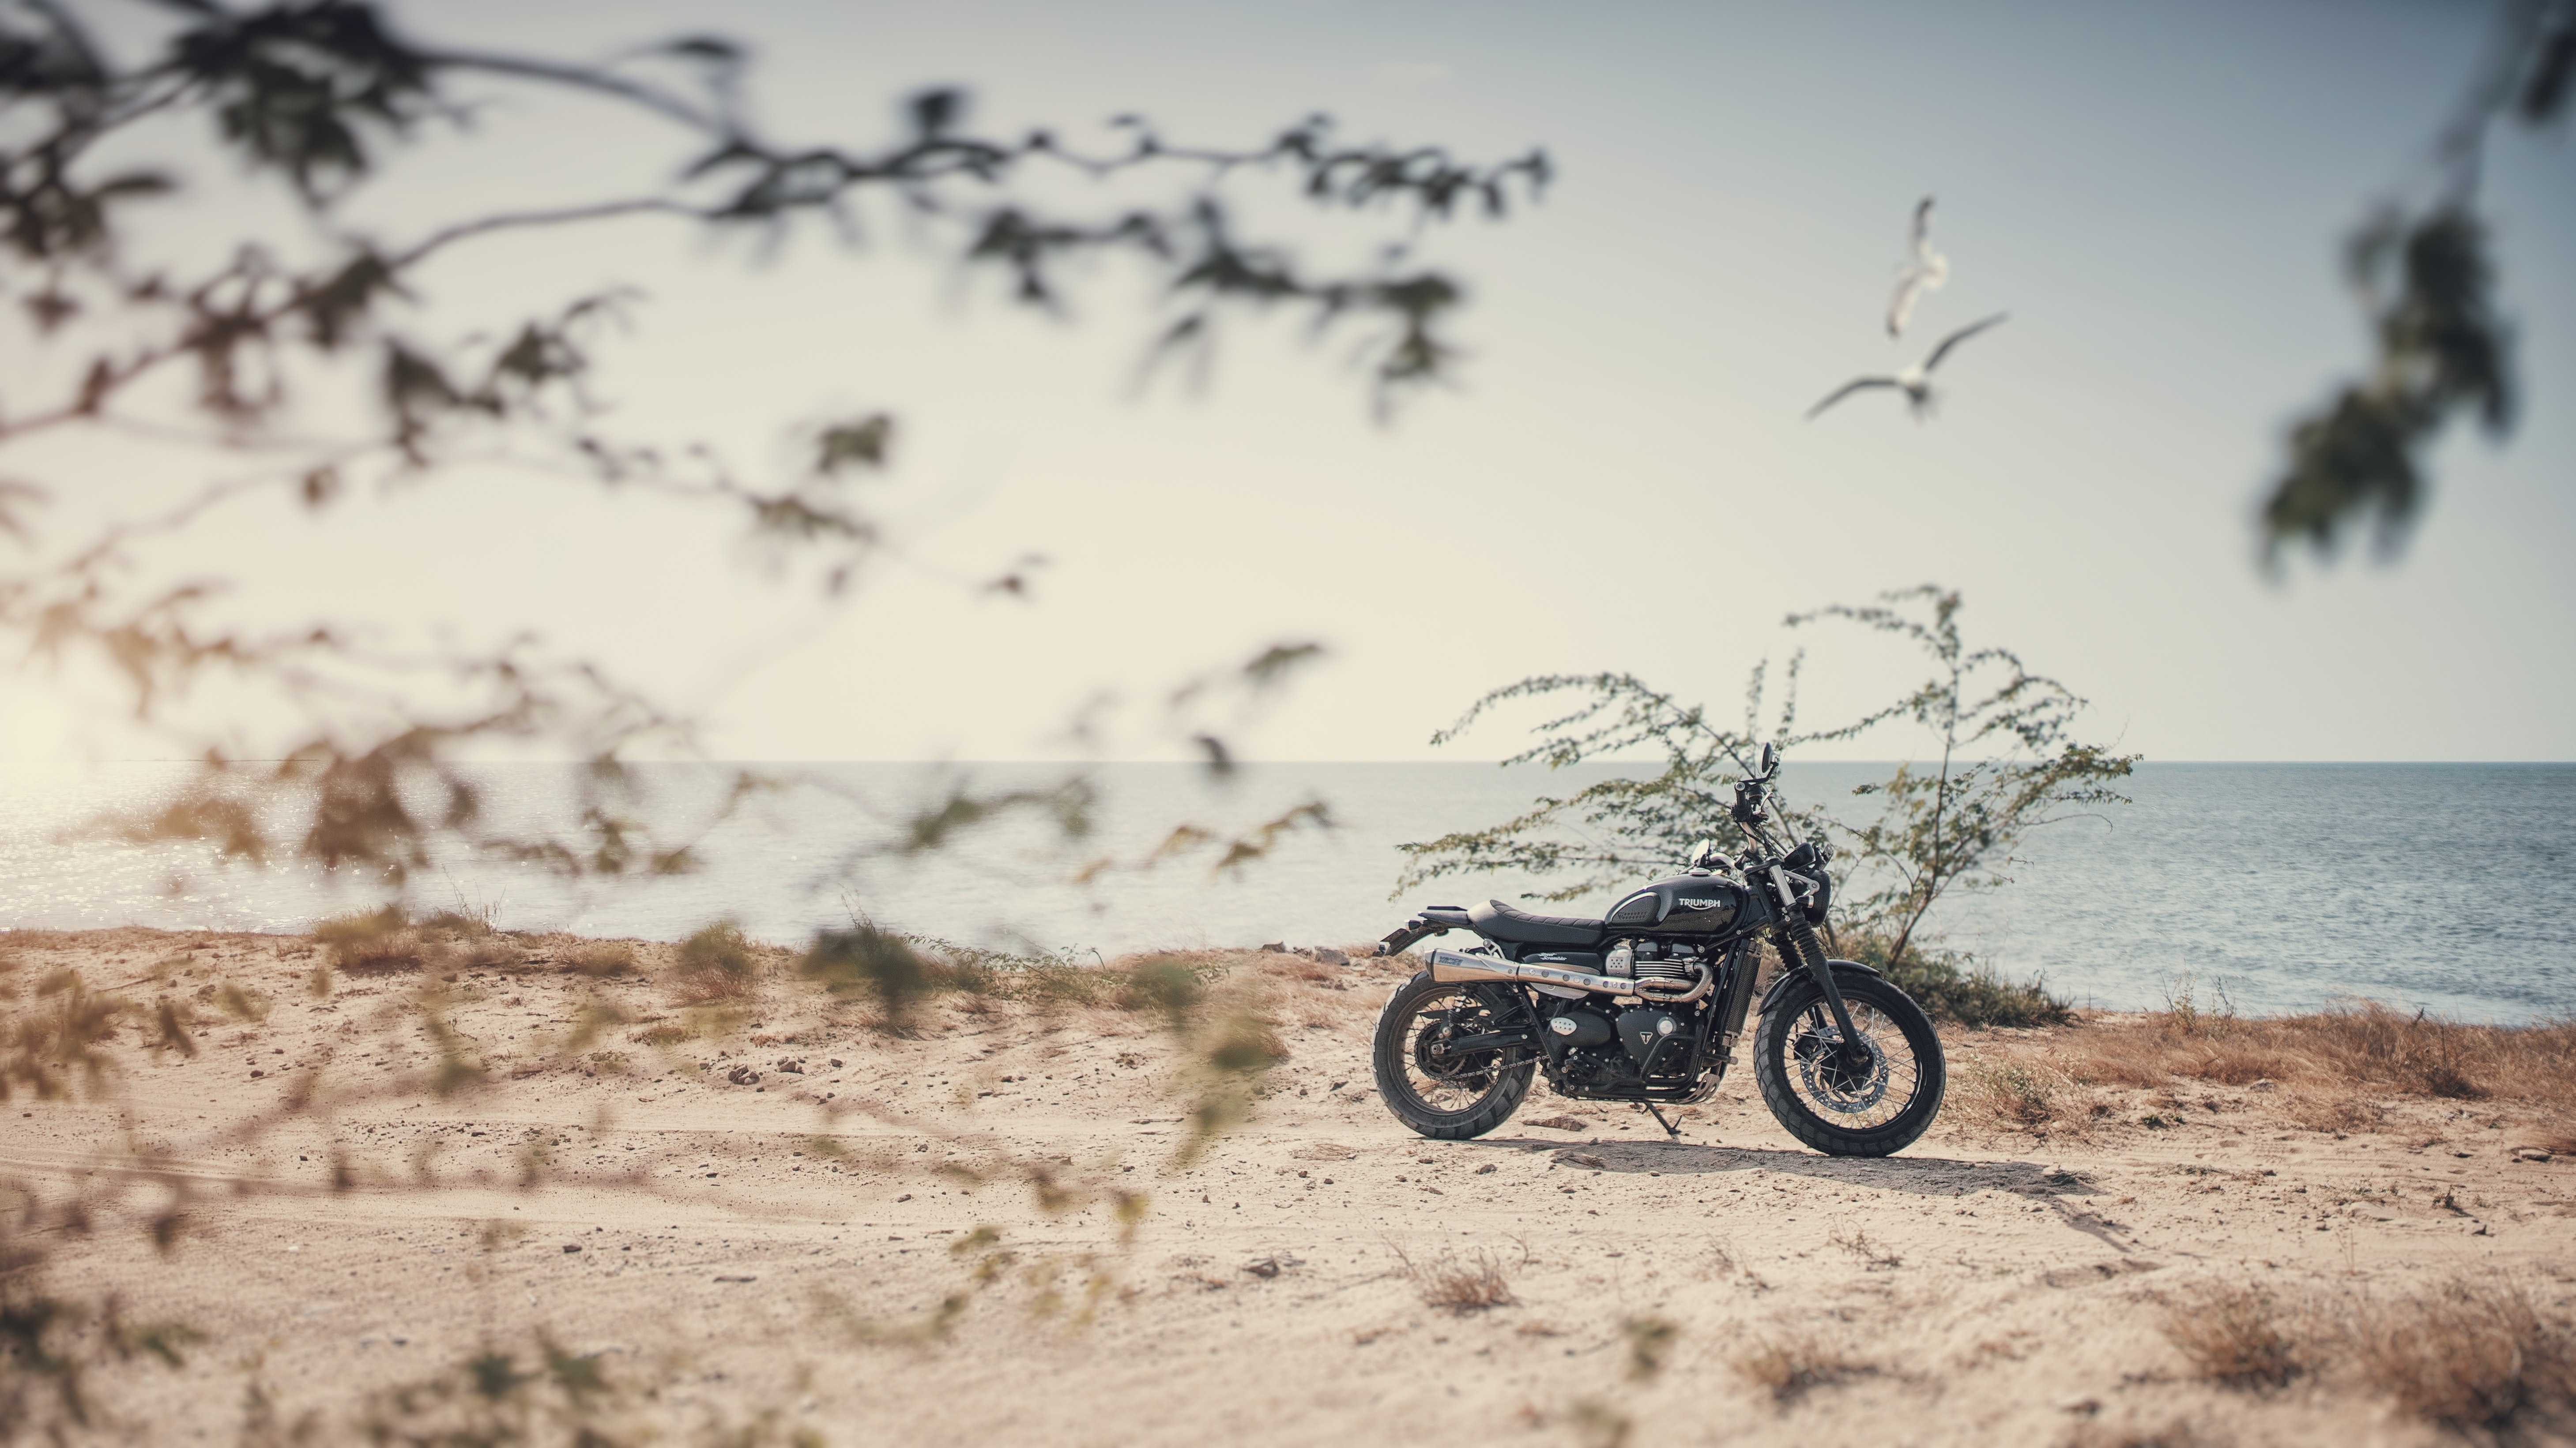 black and gray standard motorcycle on seashore